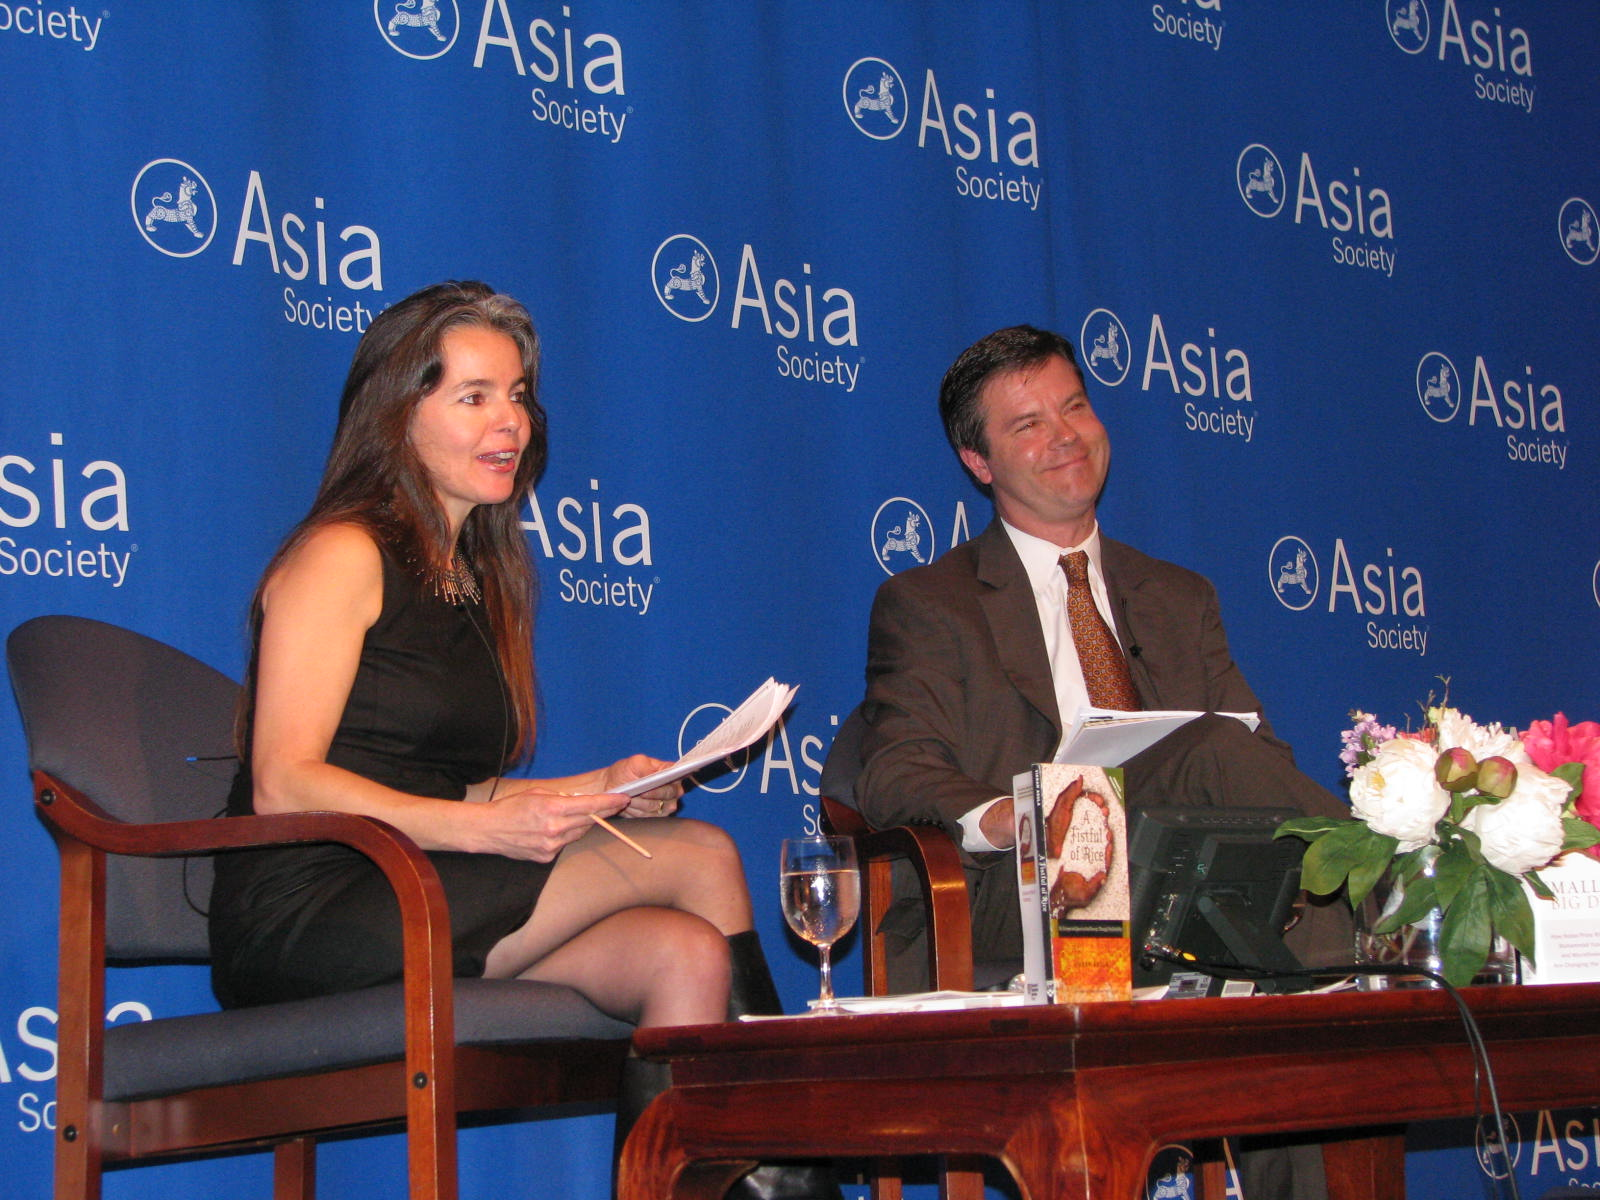 Debate moderator Niki Armacost, co-founder of Arc Finance, with Alex Counts, at his October 2010 debate with Vikram Akula, chair and founder of SKS, at the Asia Society.